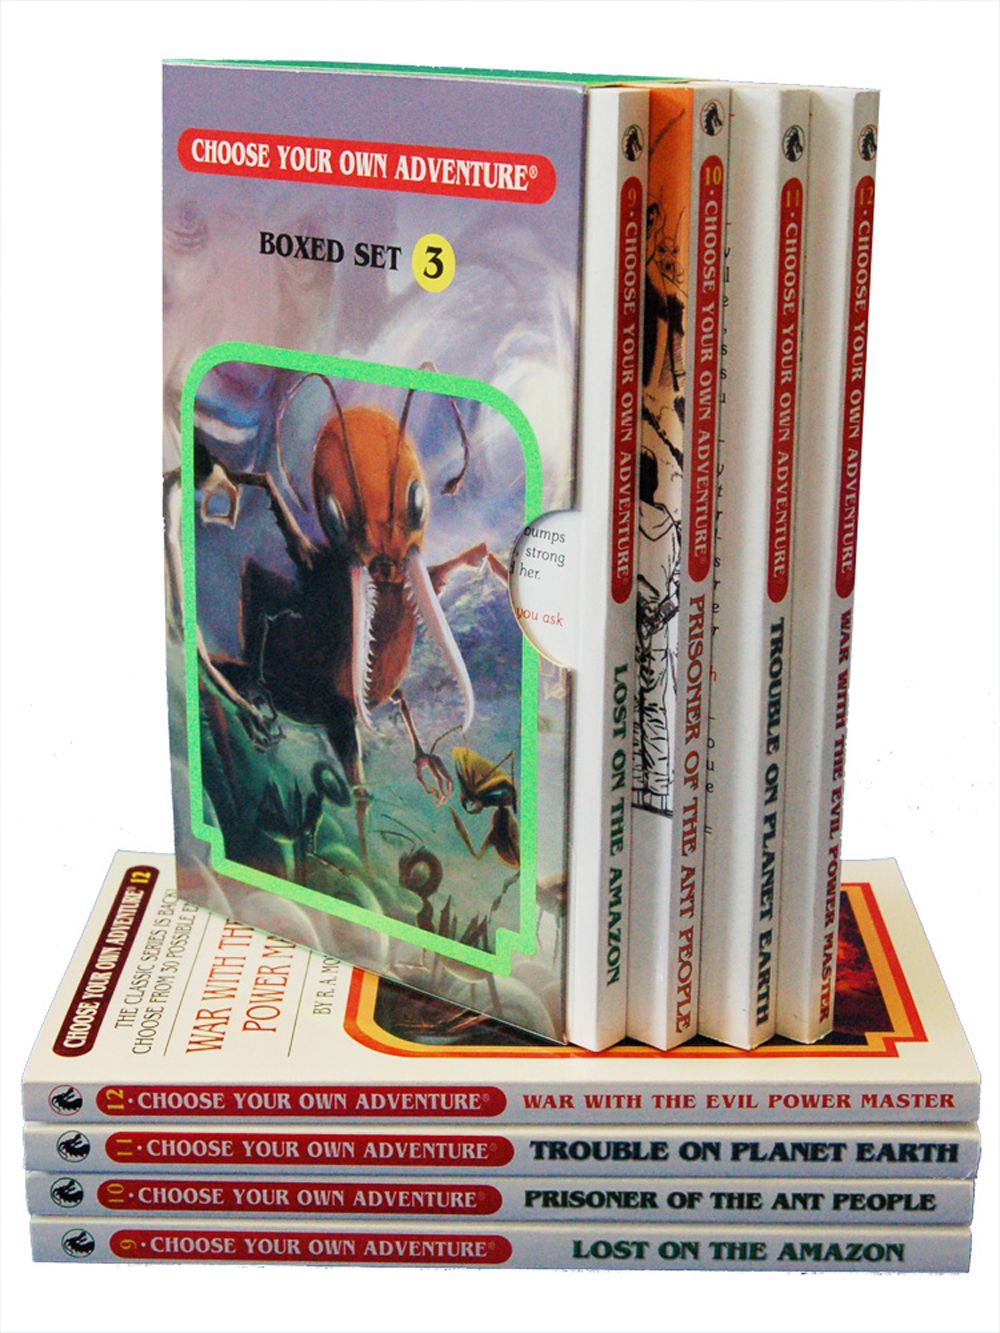 "4 Book Box Set #3 includes ""Prisoner of the Ant People,"" ""Lost on the Amazon,"" ""Trouble on Planet Earth,"" and ""War with the Evil Power Master."""